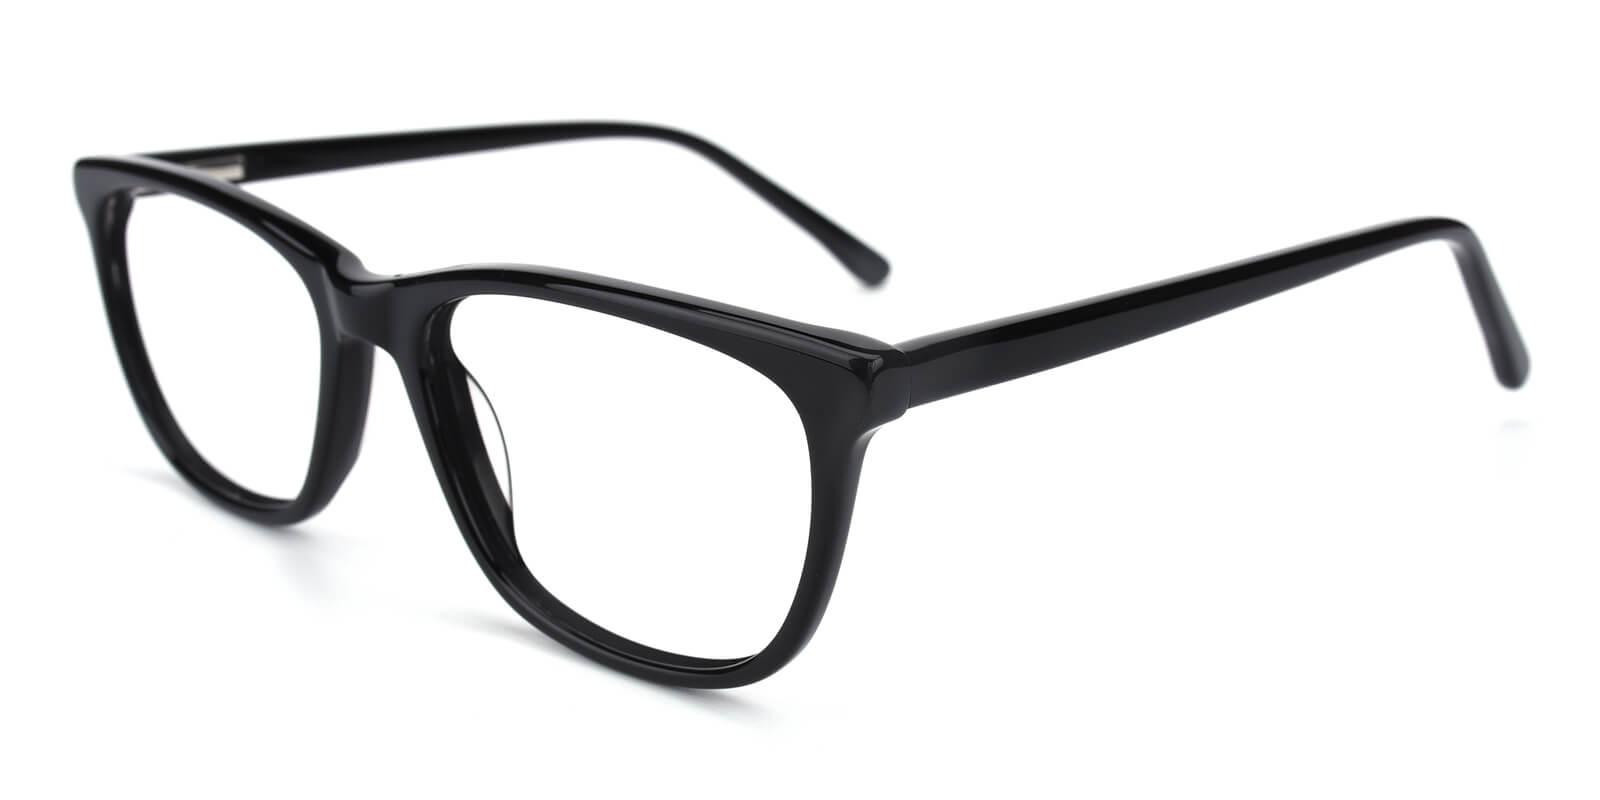 Emblem-Black-Square / Cat-Acetate-Eyeglasses-additional1